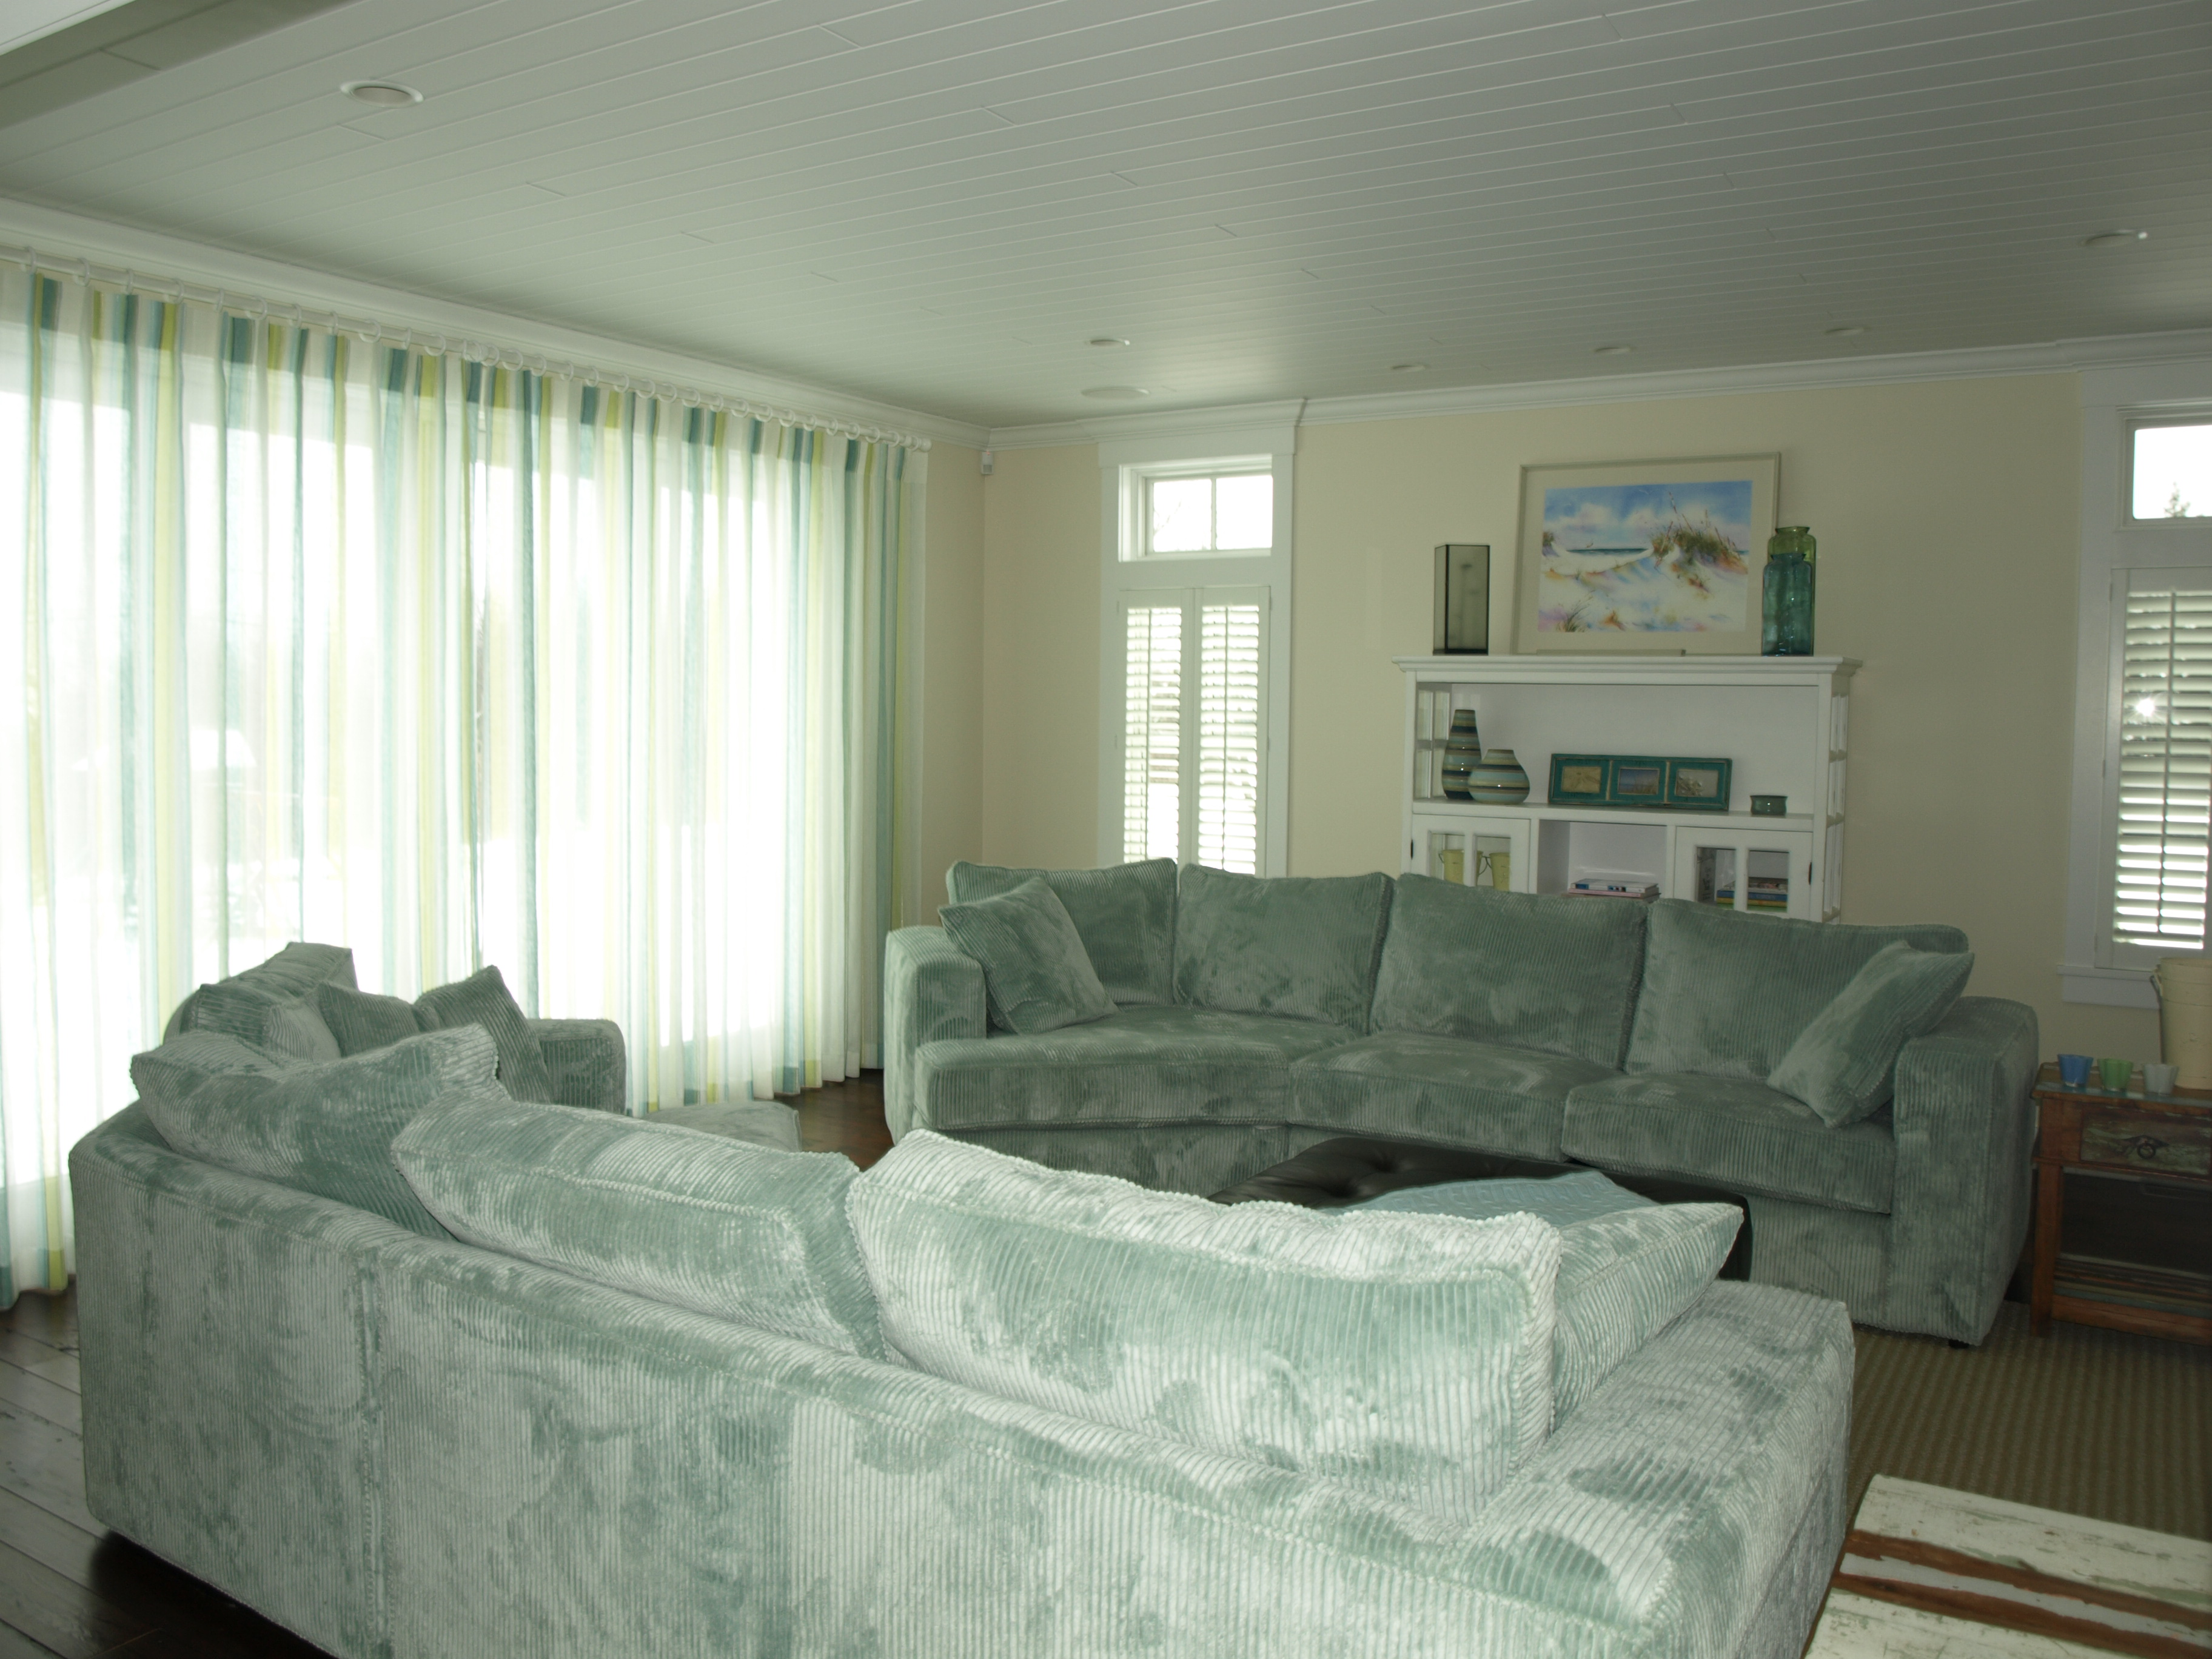 Healthy Furniture Is The Future In A Green Home Green Life Smart Life